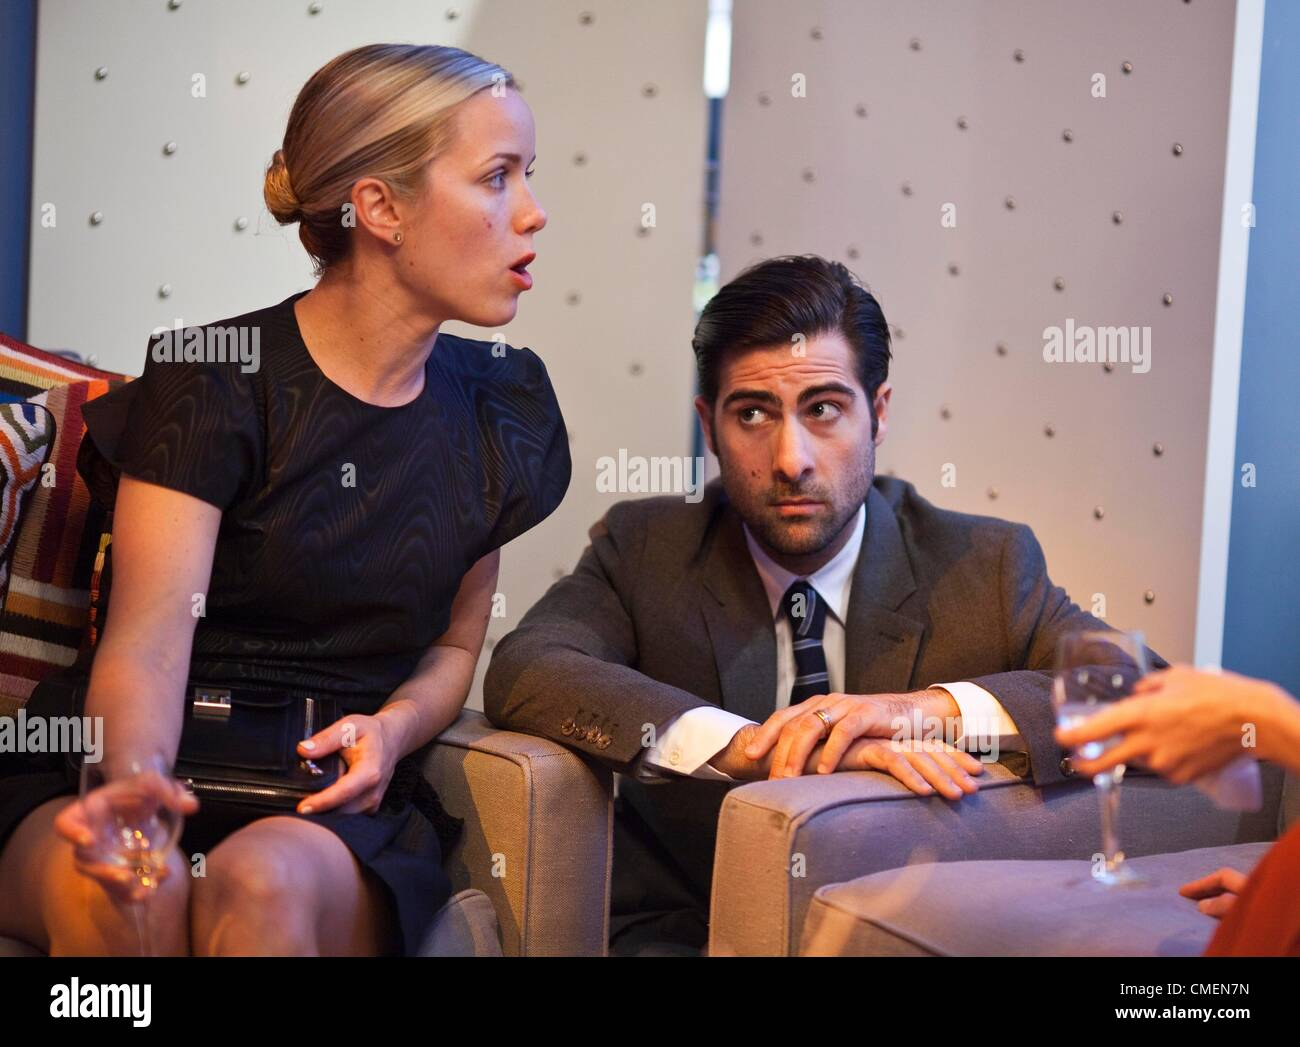 Jason Schwartzman Wife High Resolution Stock Photography And Images Alamy